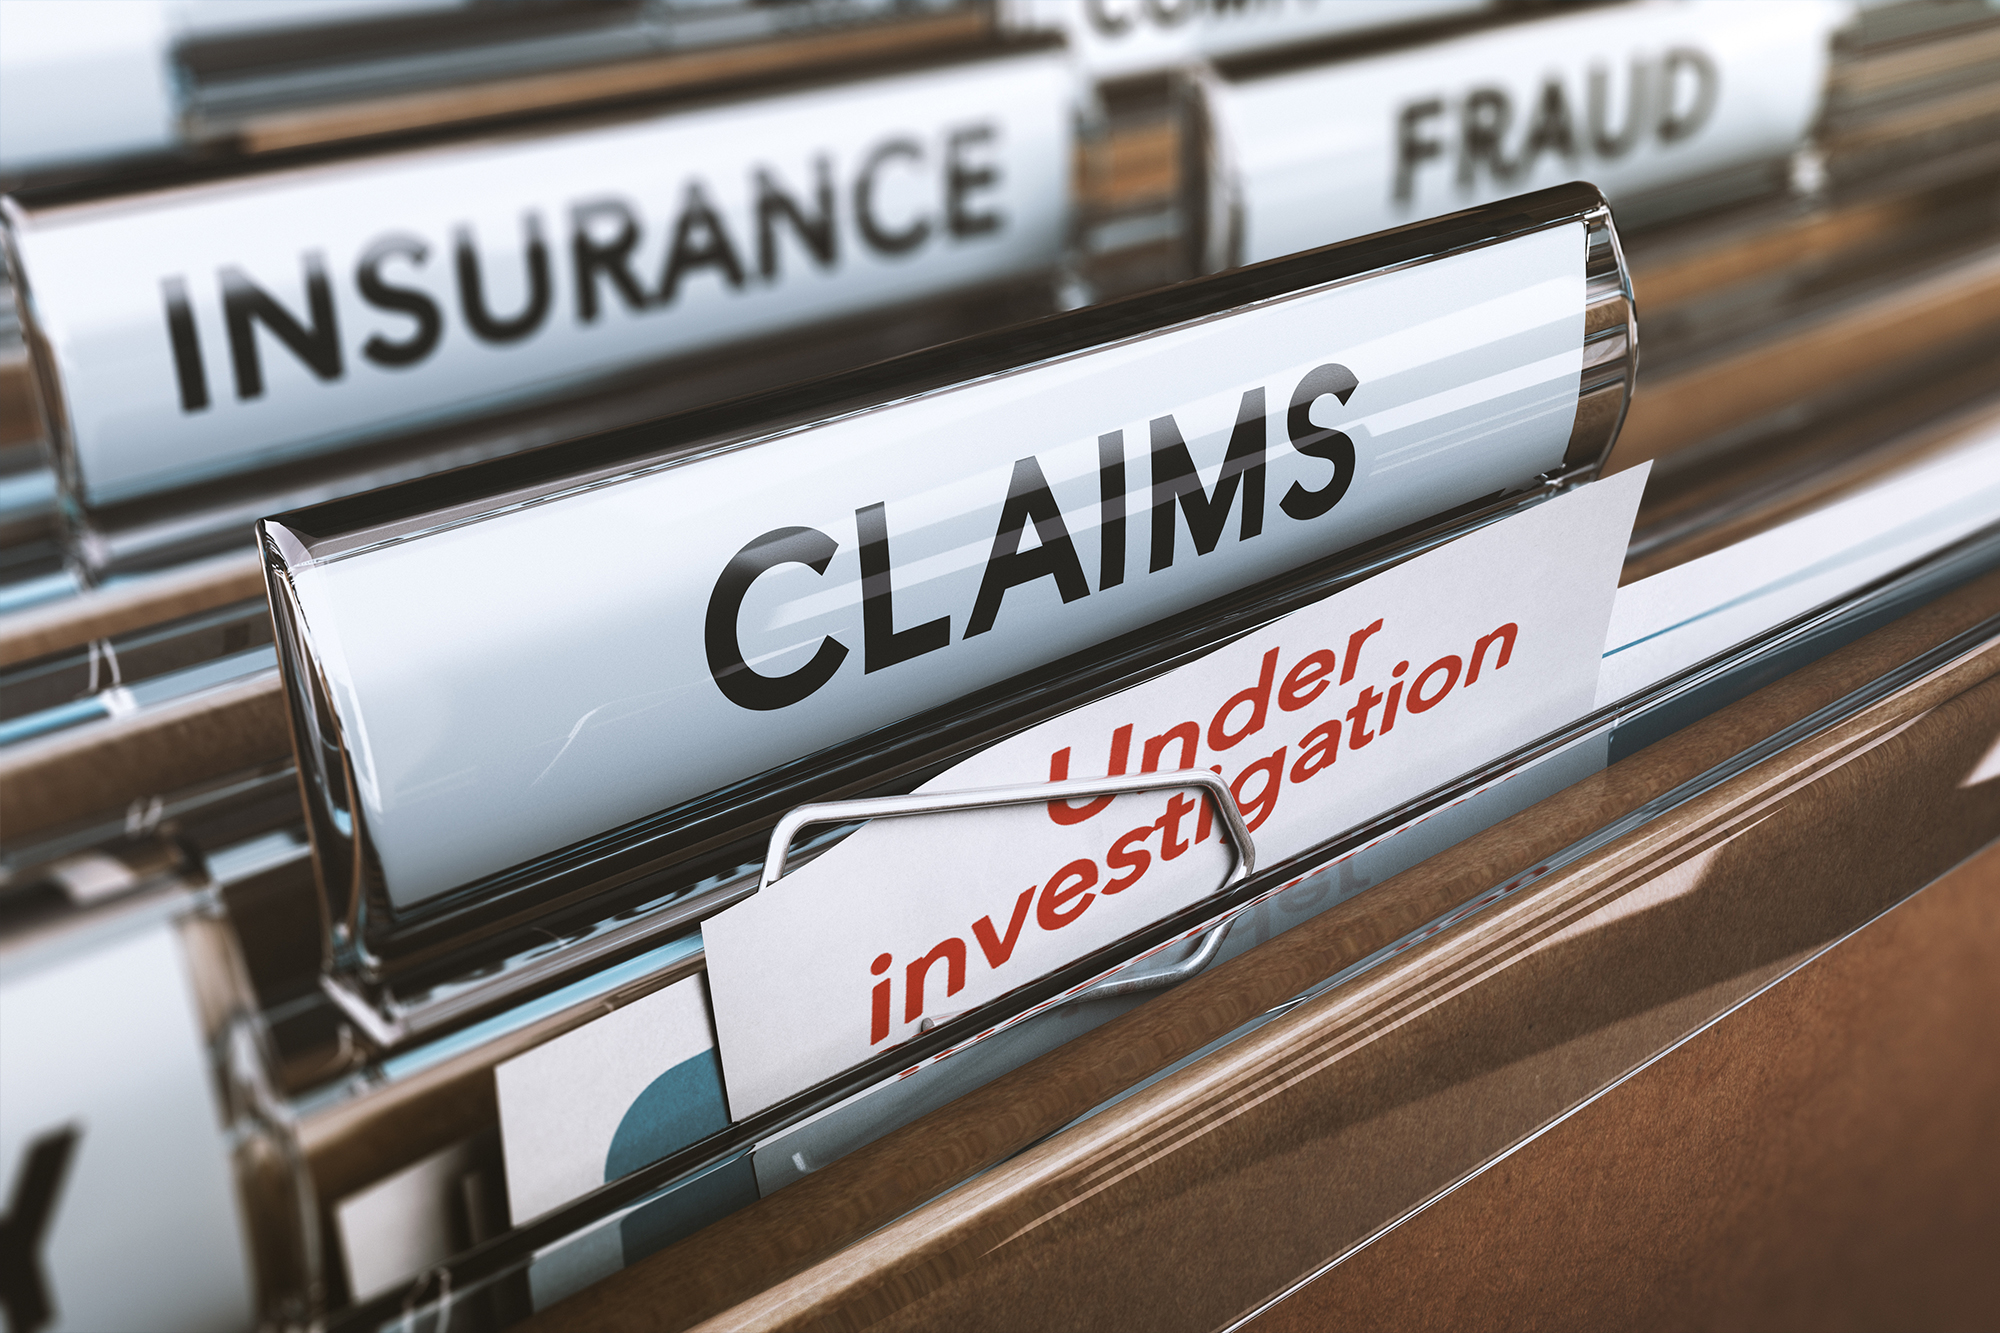 Insurance claims fraud, waste, and abuse are significant issues worldwide